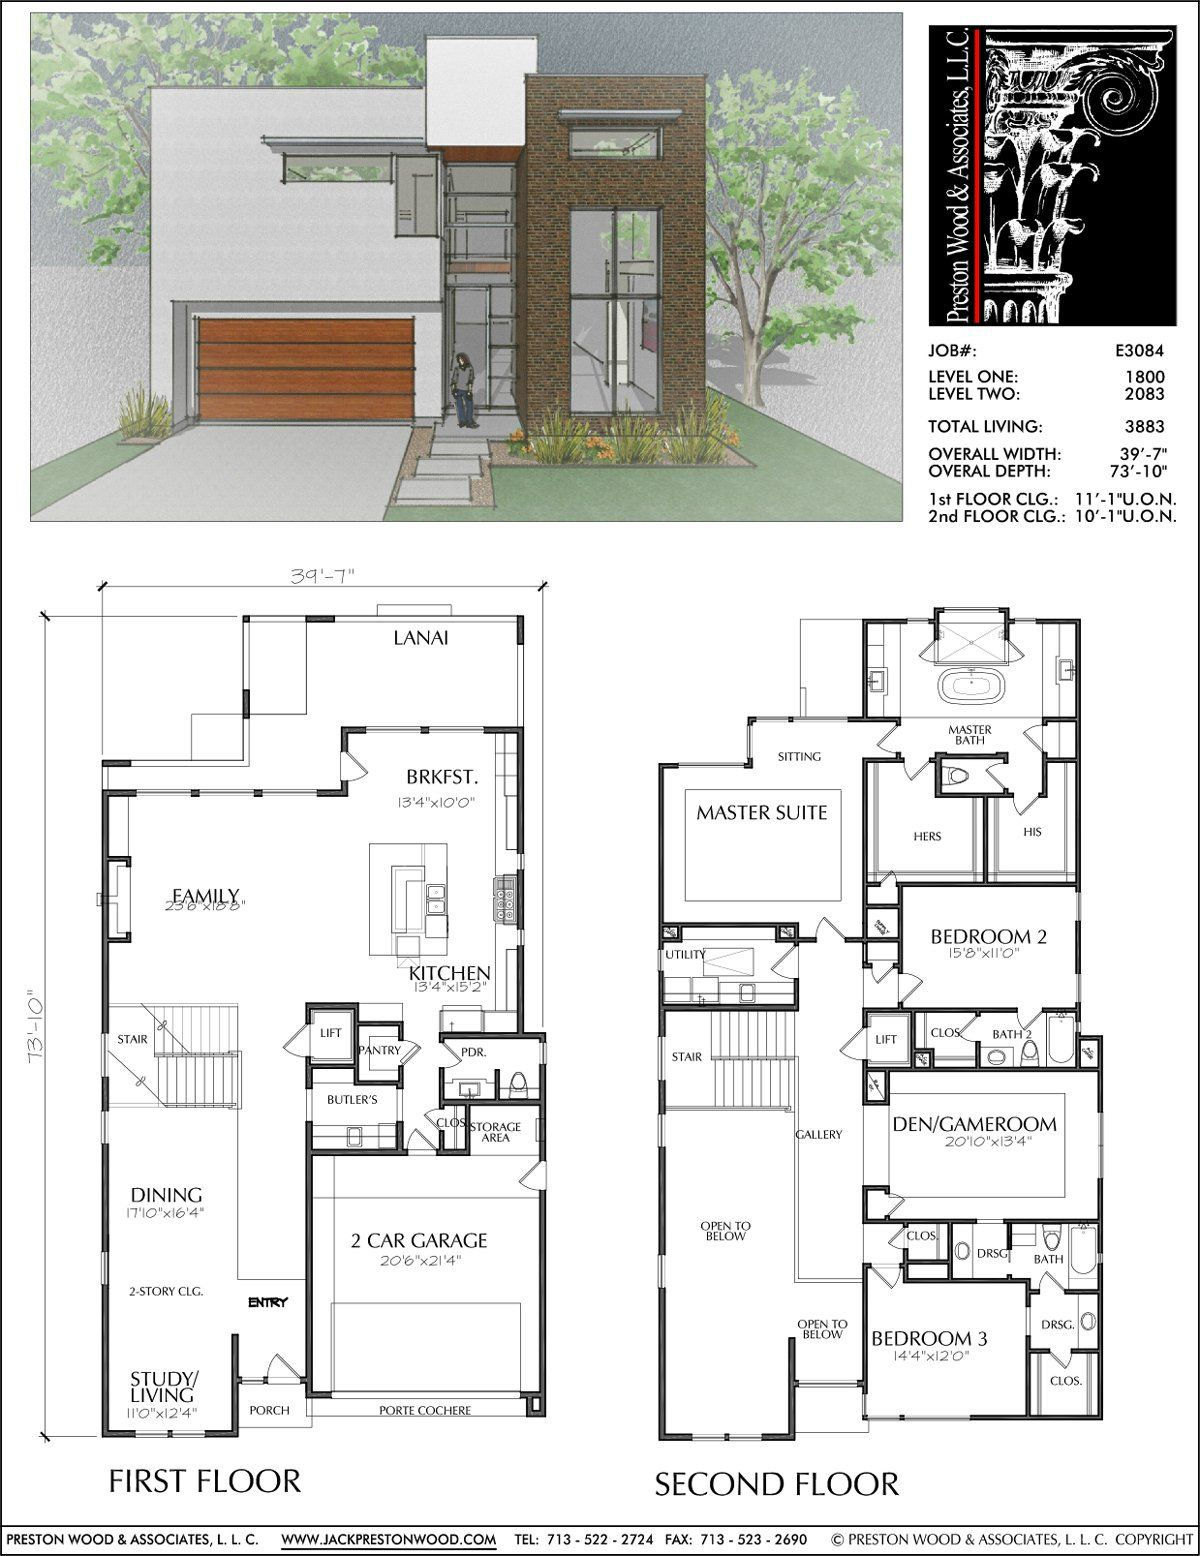 Two Story Urban House Plan E3084 Two Story House Design Two Story House Plans New House Plans